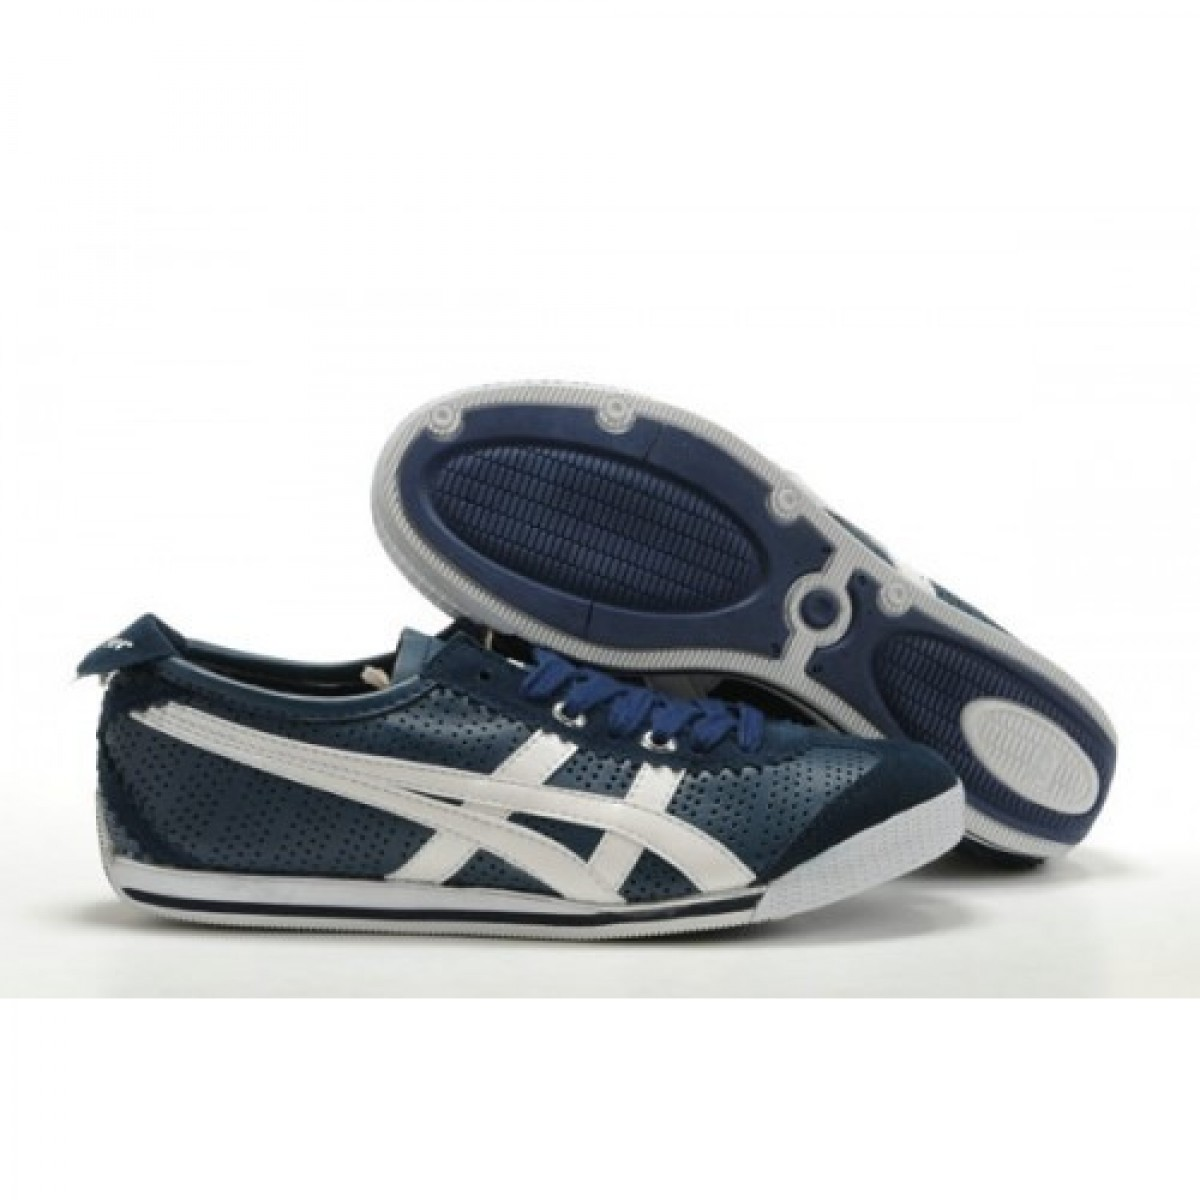 GS9884 Soldes Asics Onitsuka Tiger Mini Cooper Chaussures Blanc Bleu Marine 54078440 Pas Cher